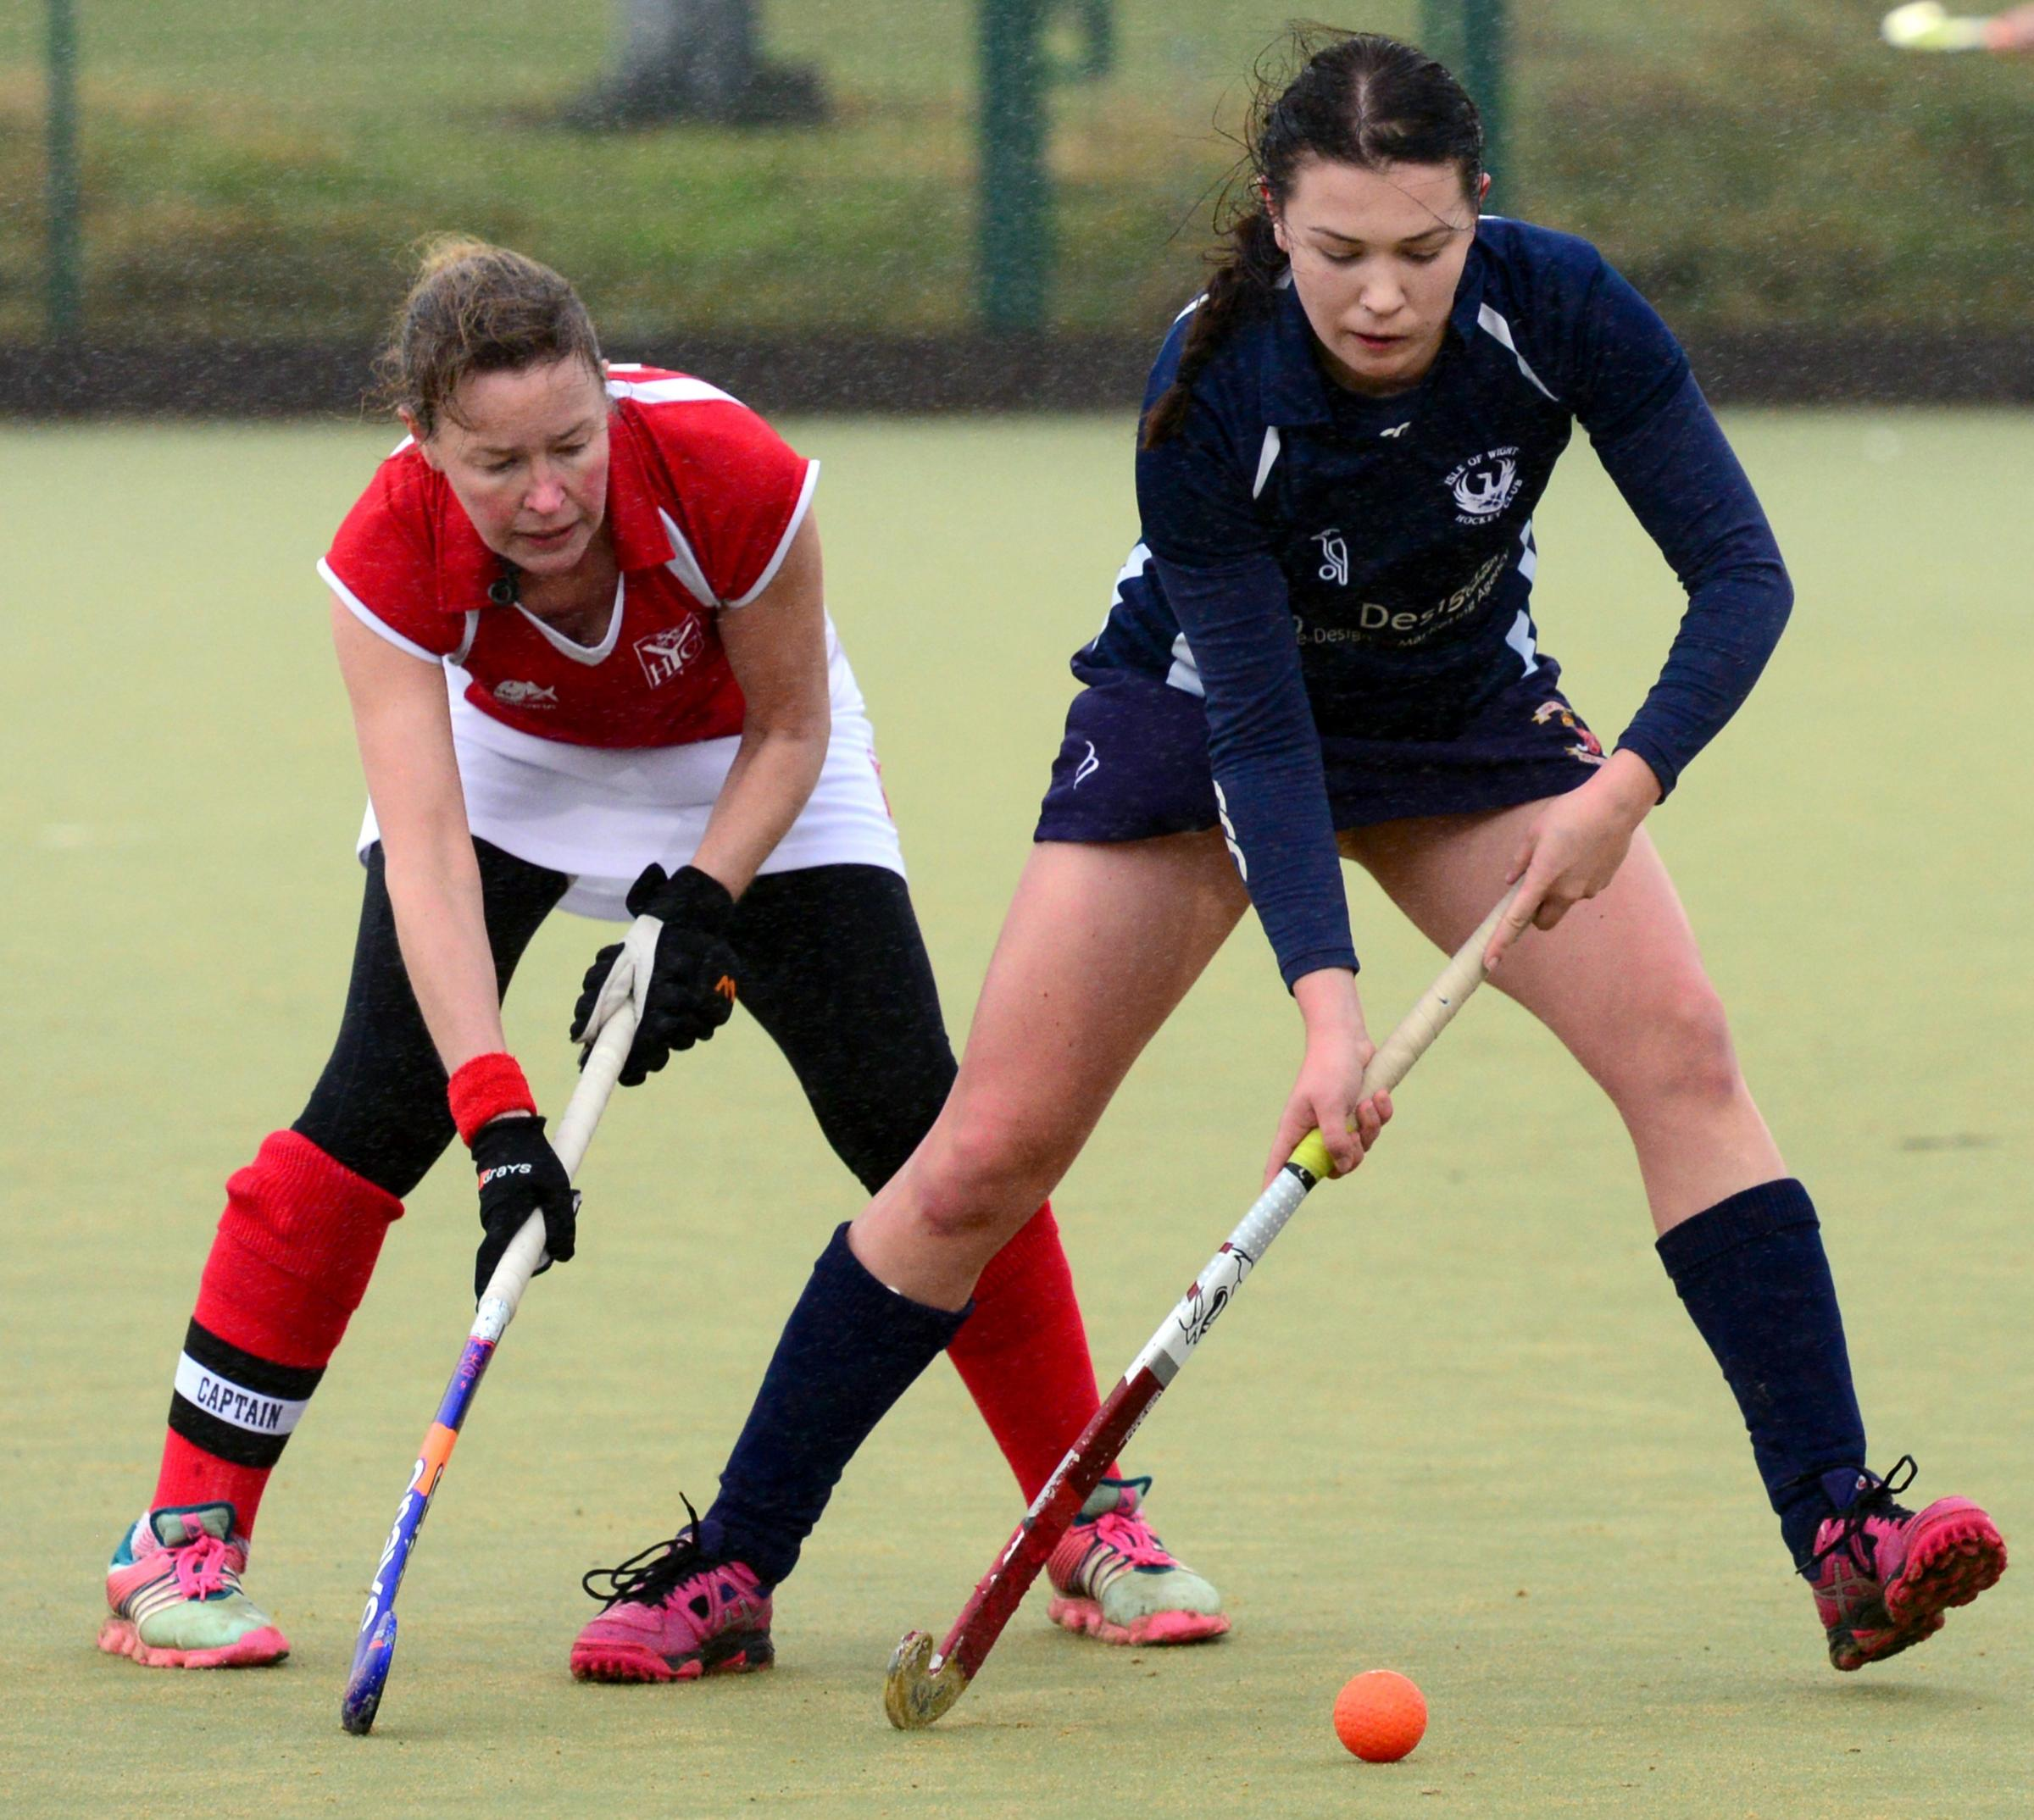 Georgia Whittle (in blue) in action for the Isle of Wight Ladies I against Yateley.  Photos: Robin Crossley